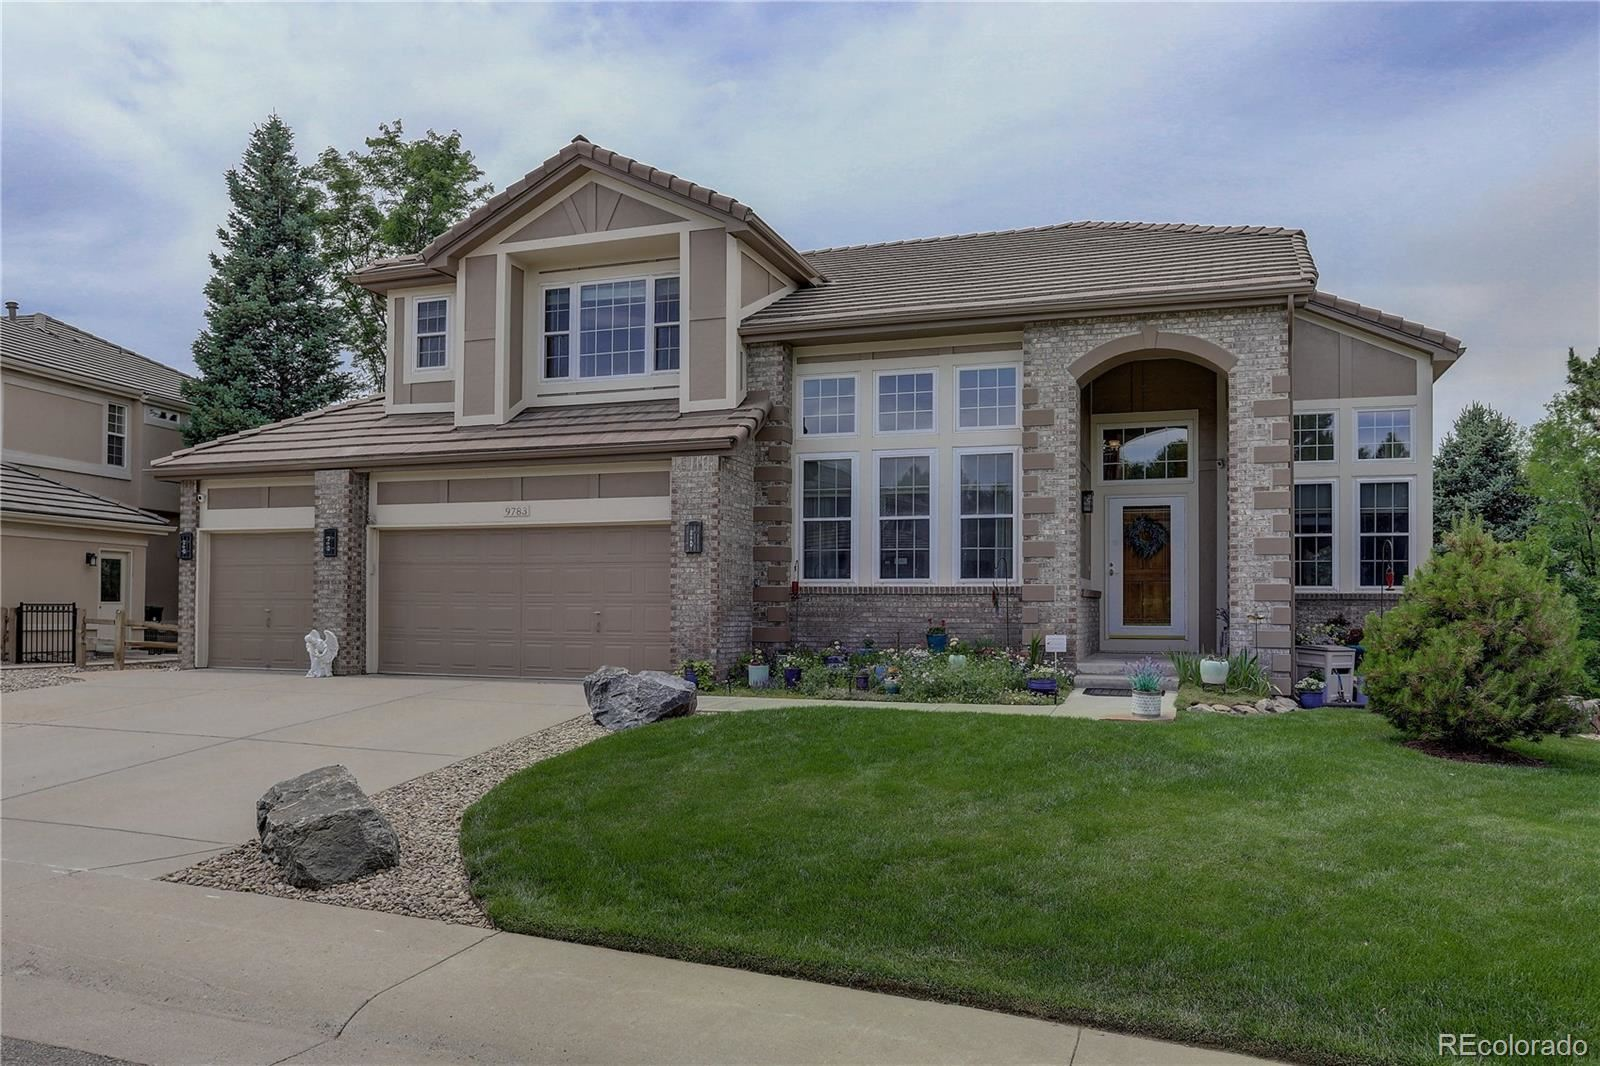 9783 Tall Grass Circle, Lone Tree, CO 80124 - #: 3314427